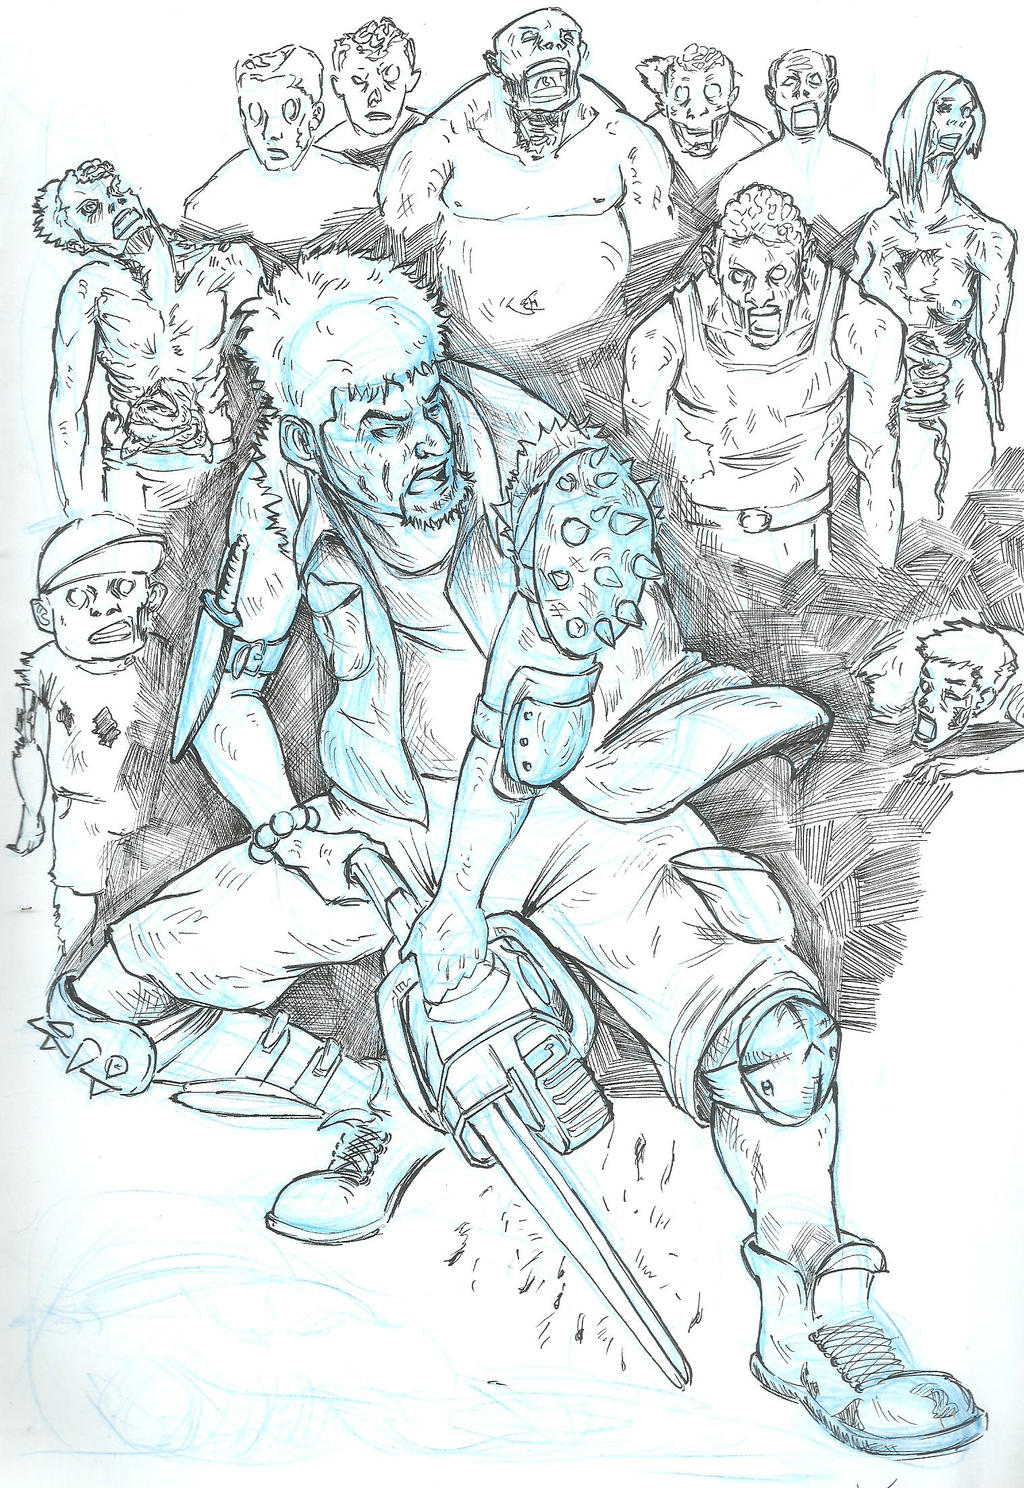 The zombie apocalypse coloring book -  Zombie Apocalypse 1 By Mad Fever